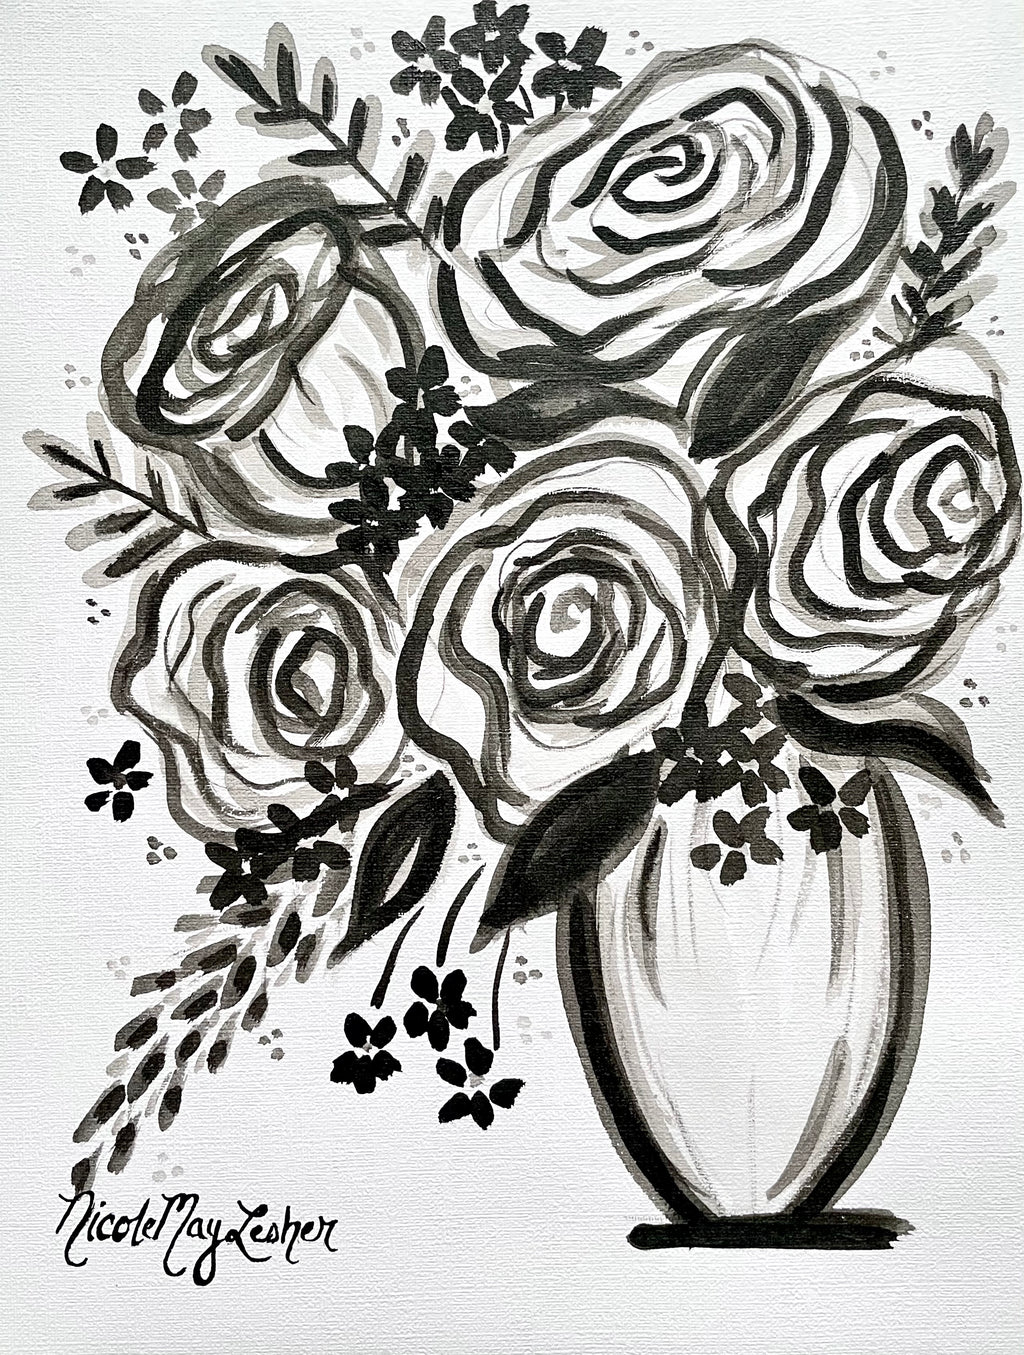 Black and White Acrylic Flower Painting | Nicole May Lesher